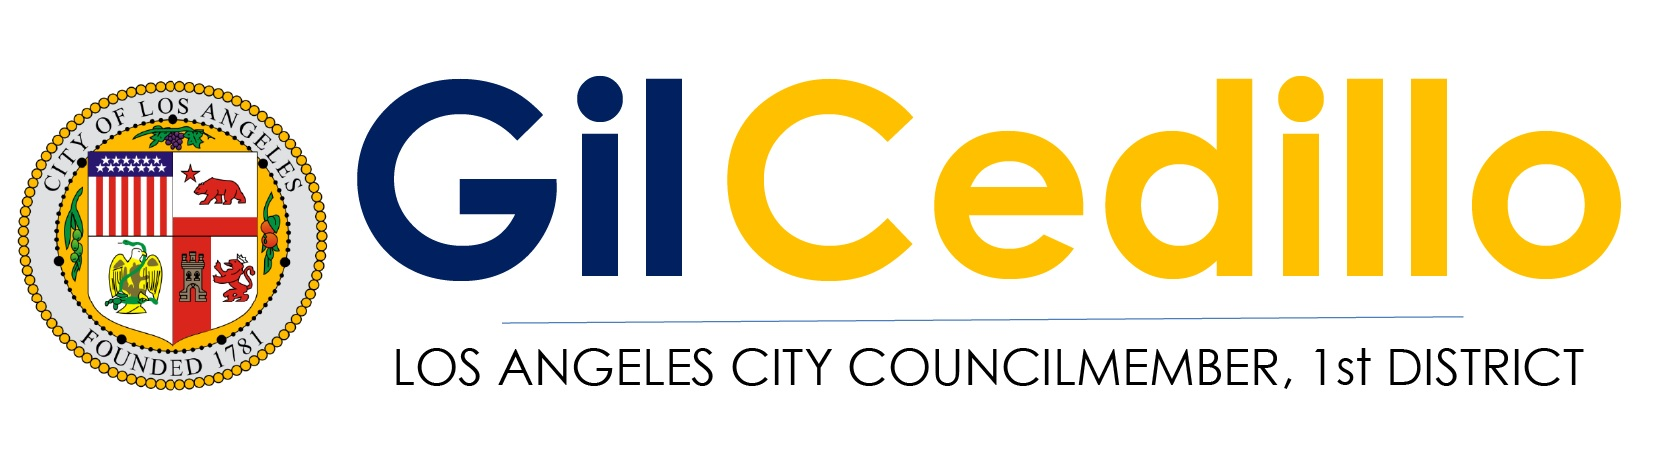 2015_Cedillo_Website_Logo.jpg